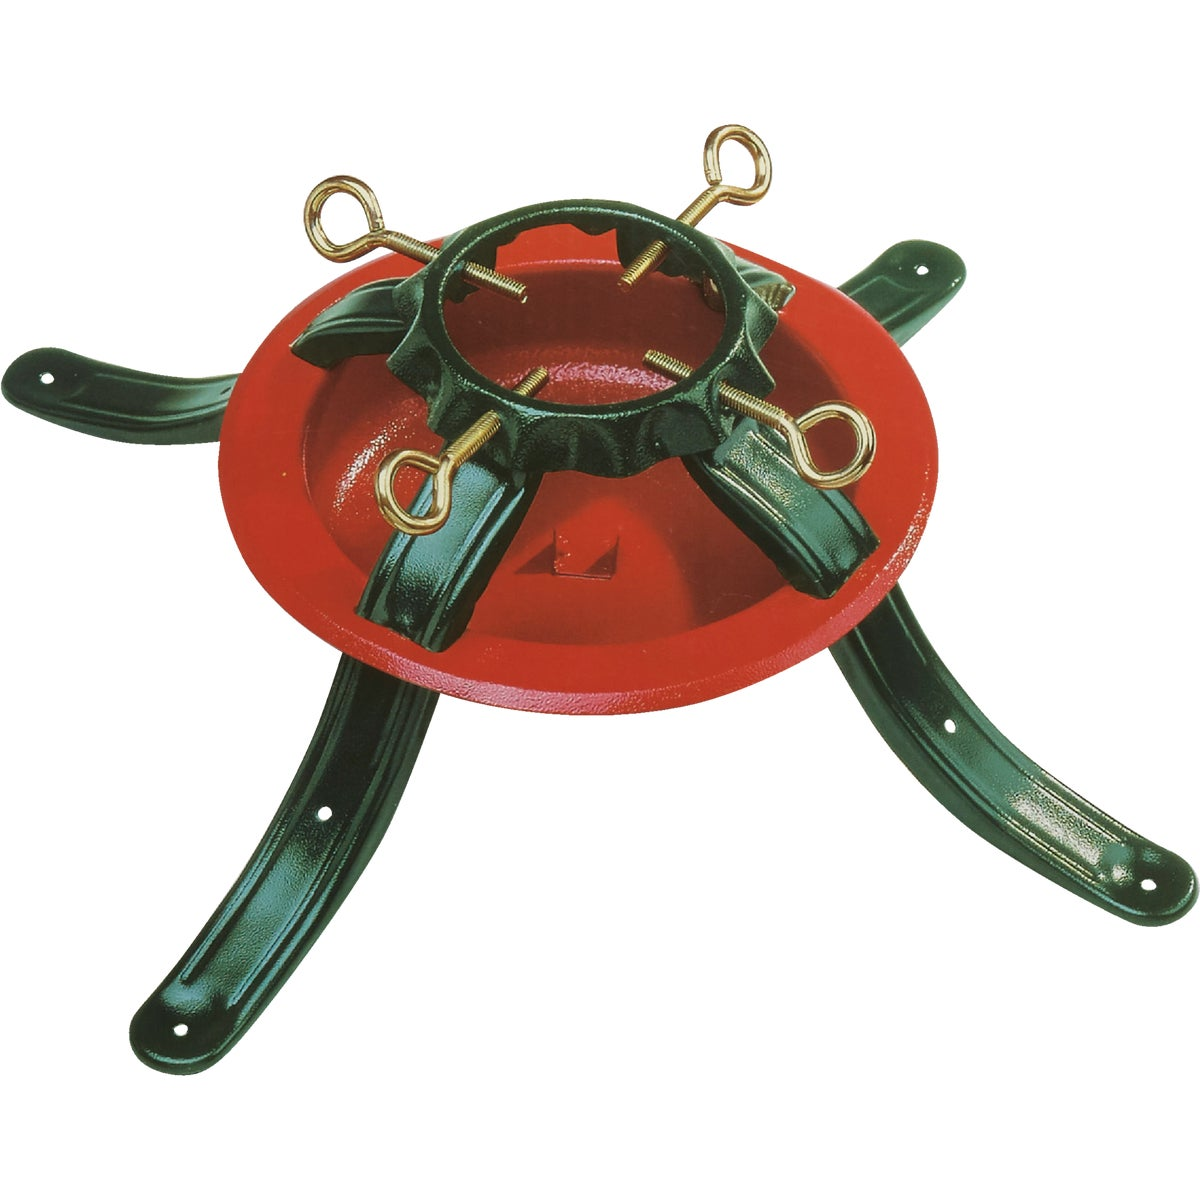 7' STEEL TREE STAND - 5164 by Jack Post/chr/import